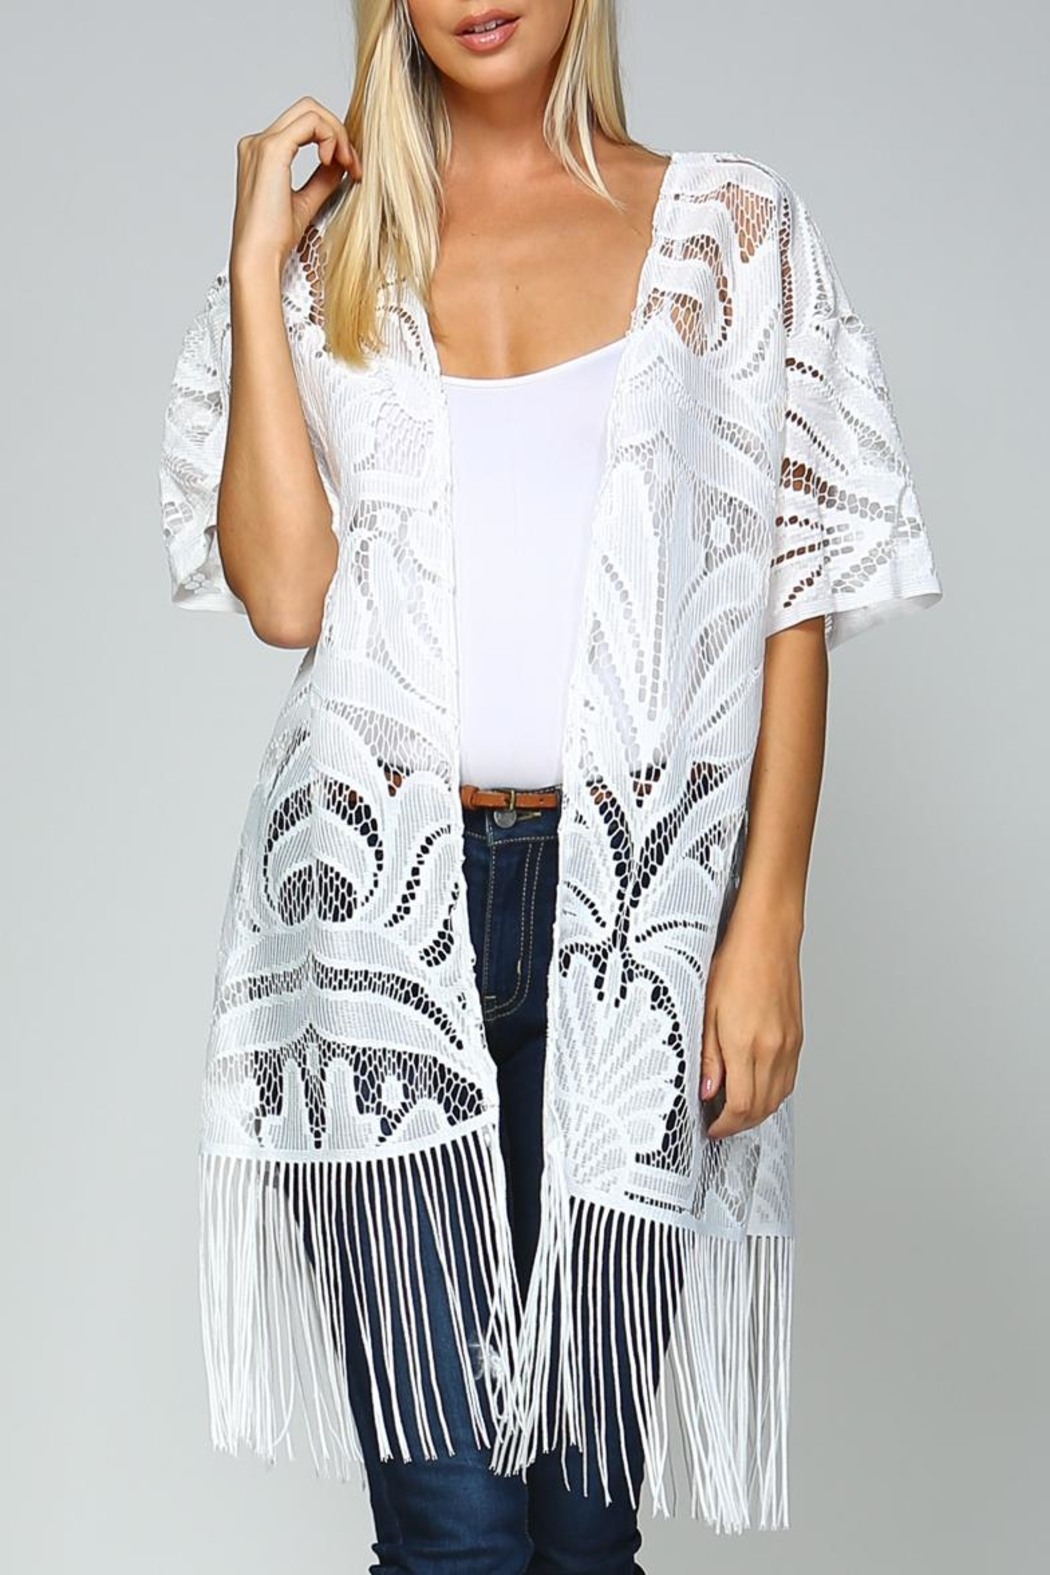 Racine White Lace Kimono from California — Shoptiques